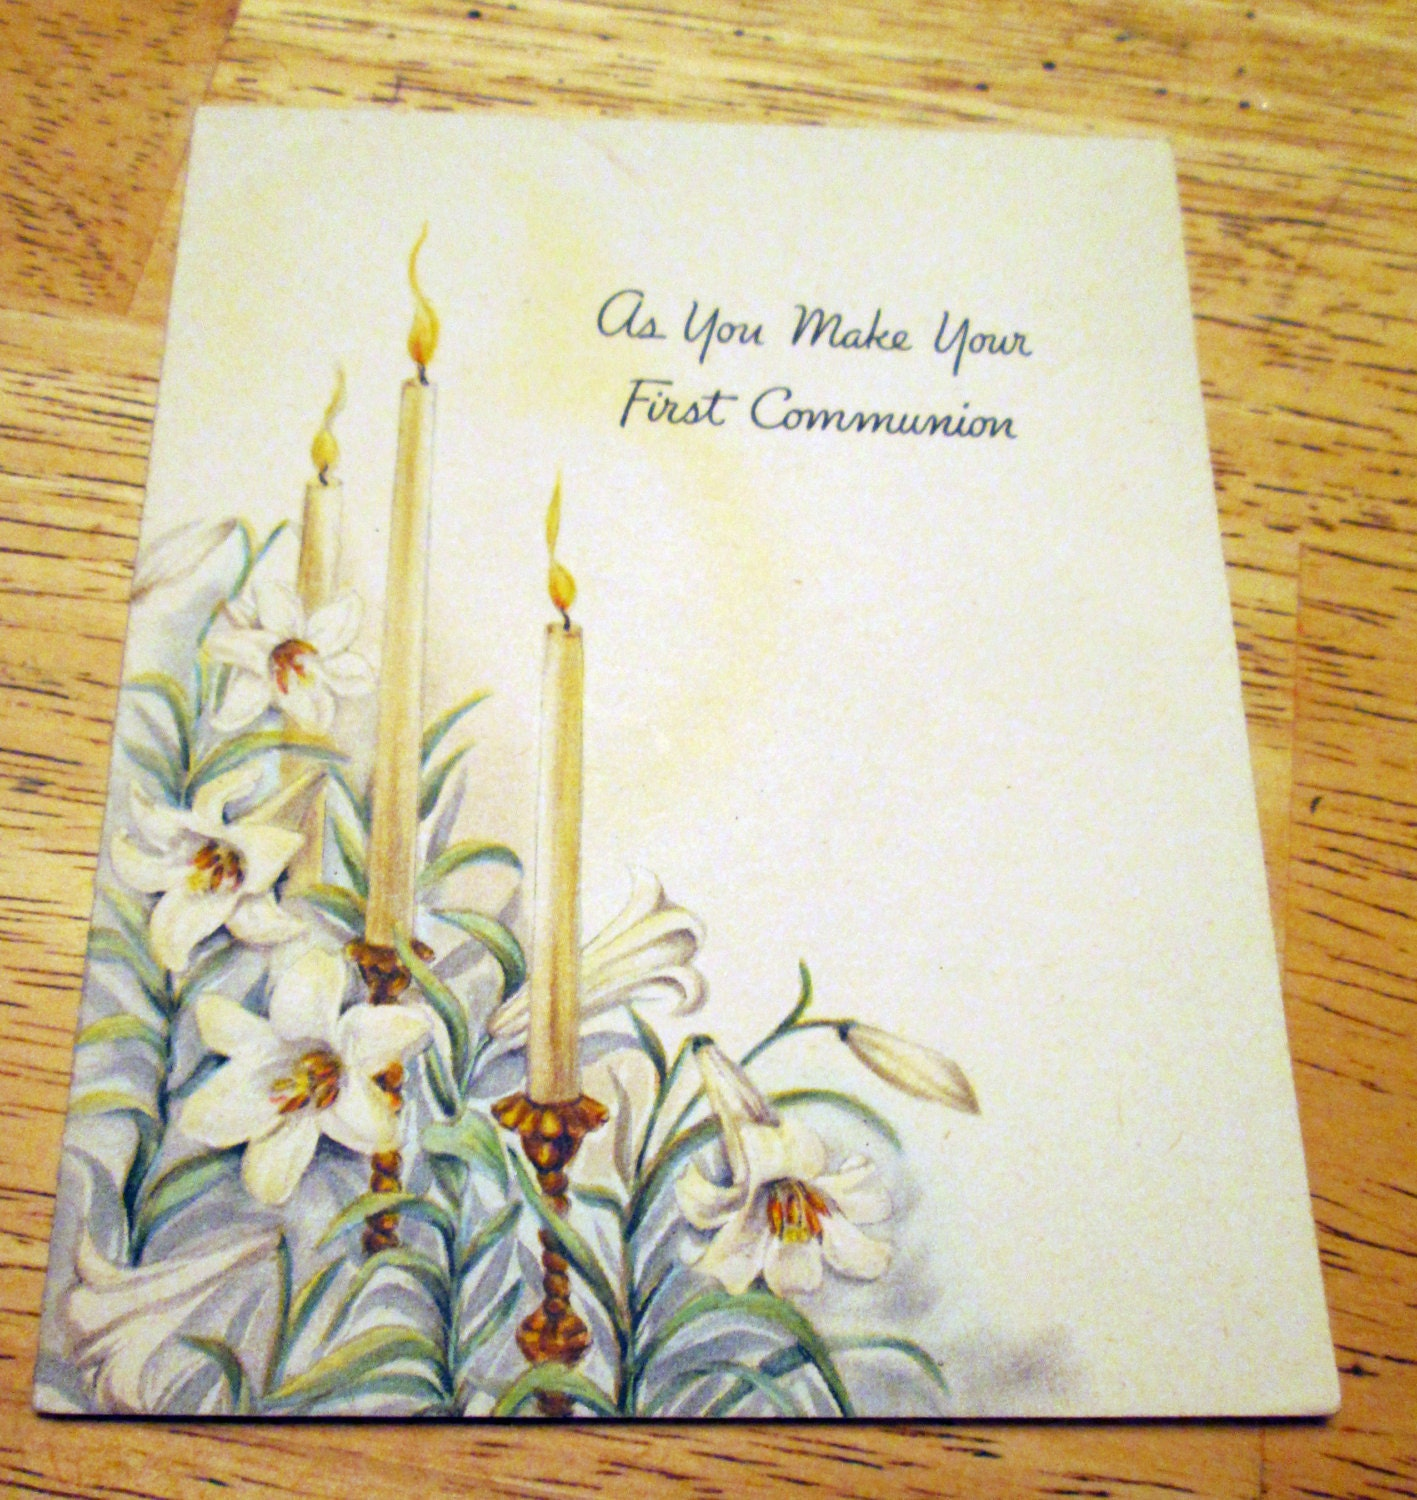 Vintage first communion greeting card by hallmark 1940s from lise46 vintage first communion greeting card by hallmark 1940s m4hsunfo Gallery